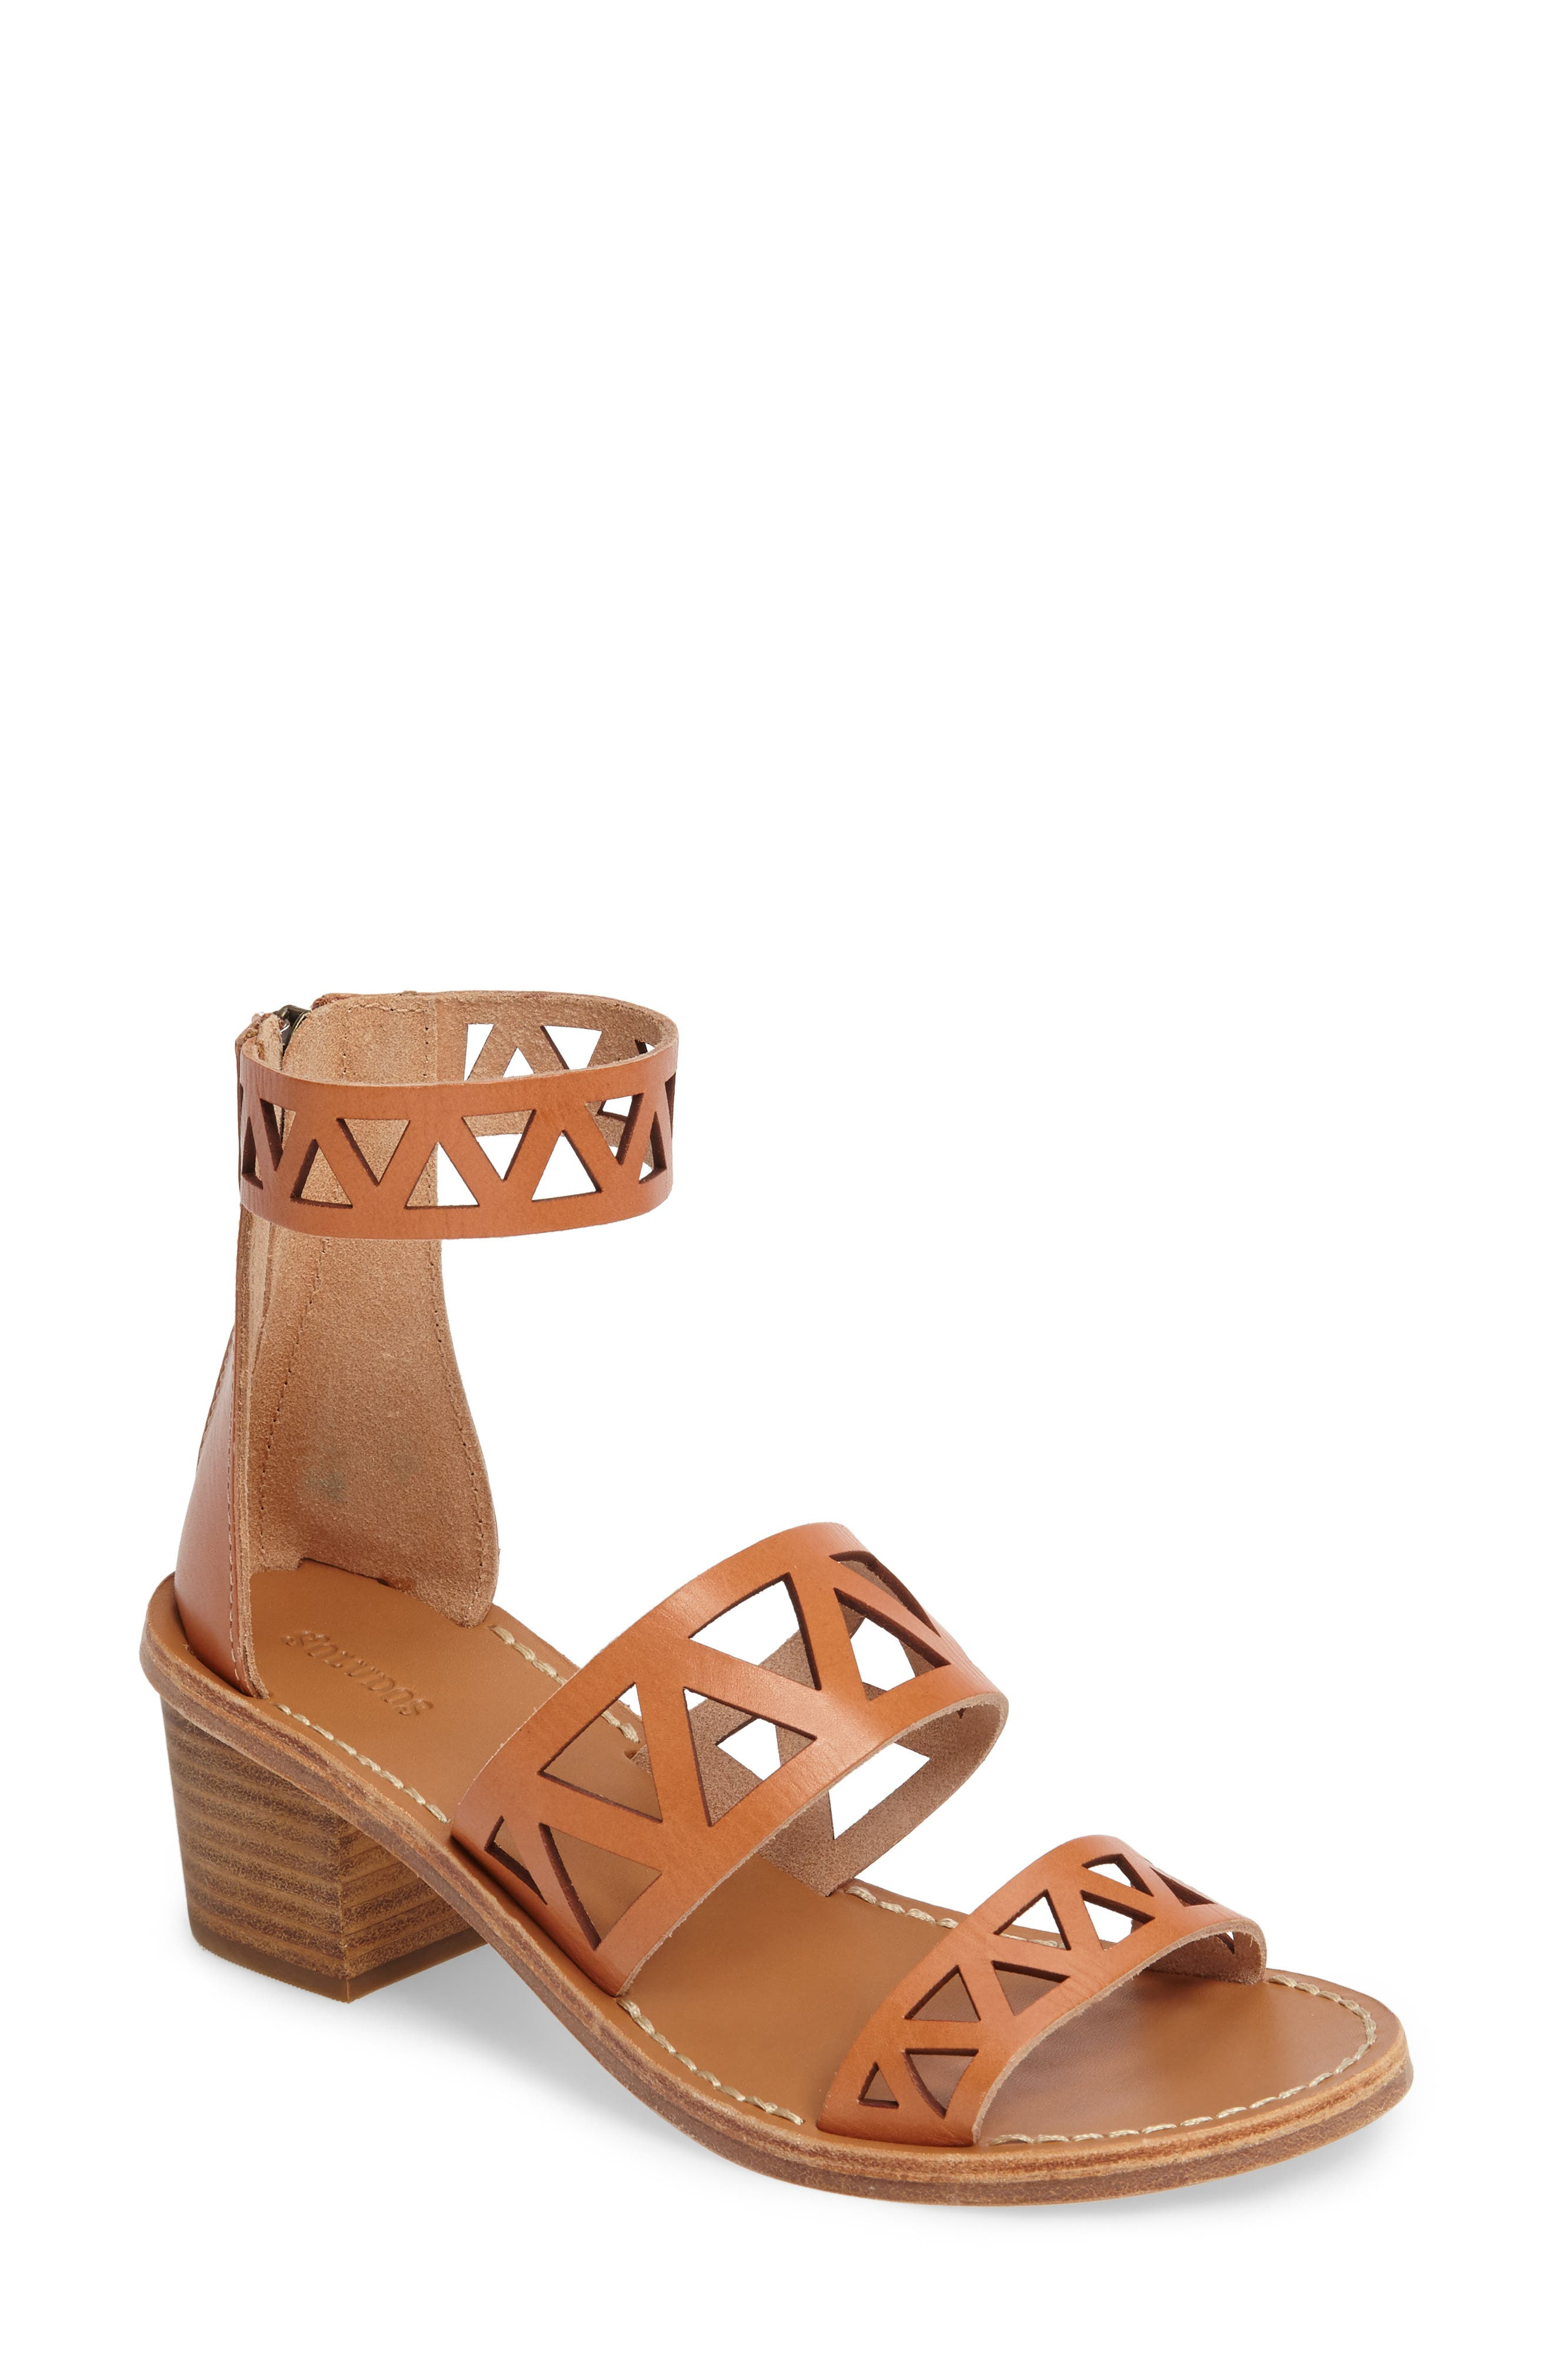 Perforated Ankle Strap Sandal,                         Main,                         color, 200